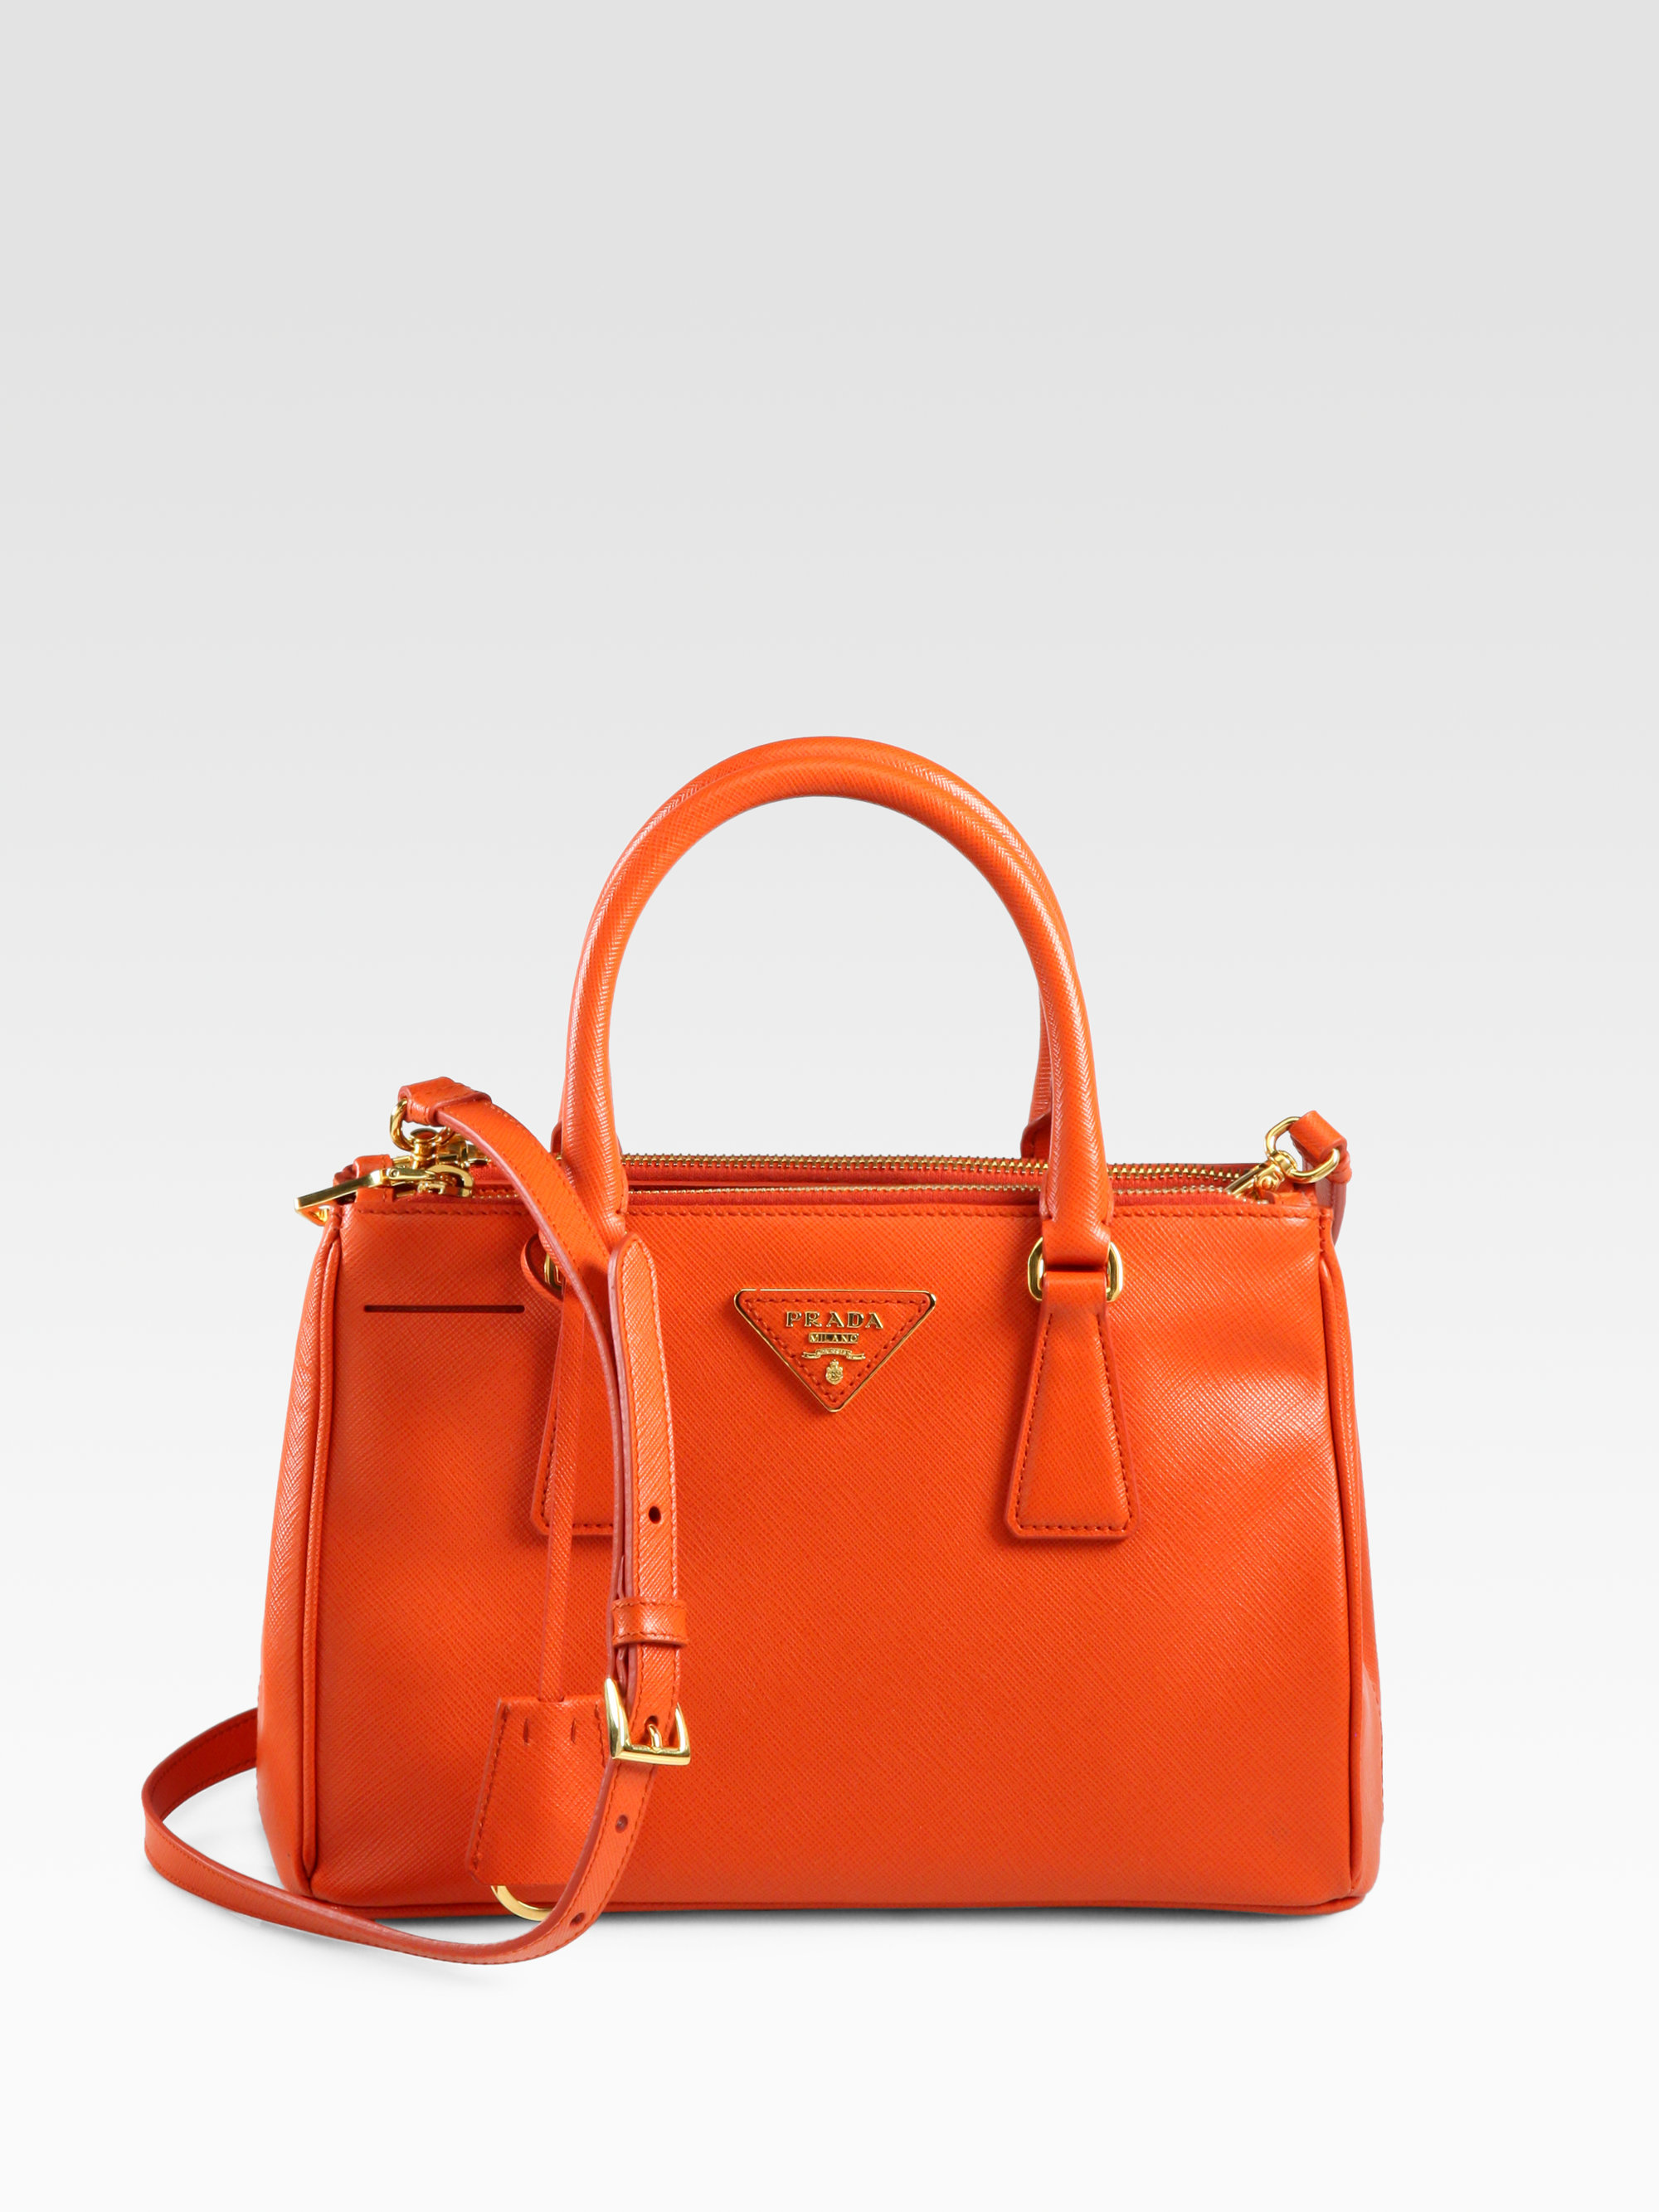 939d21b6537 Prada Saffiano Medium Double-zip Tote Bag in Orange - Lyst